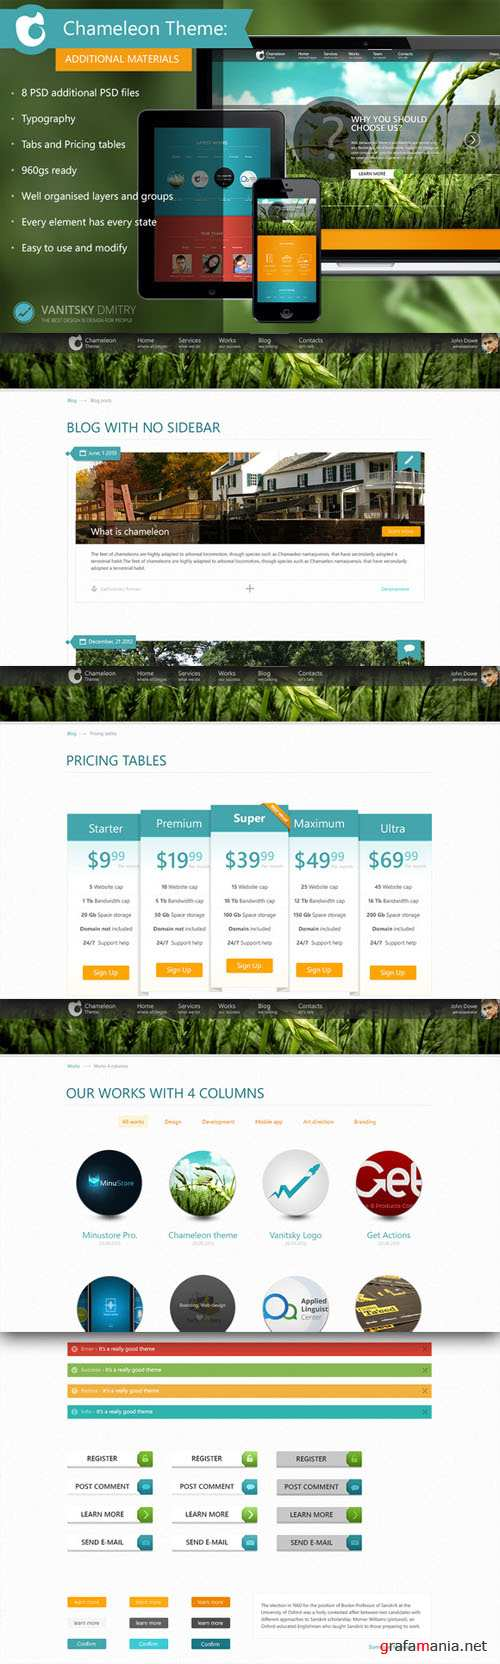 CreativeMarket - Chameleon Theme (Additional)